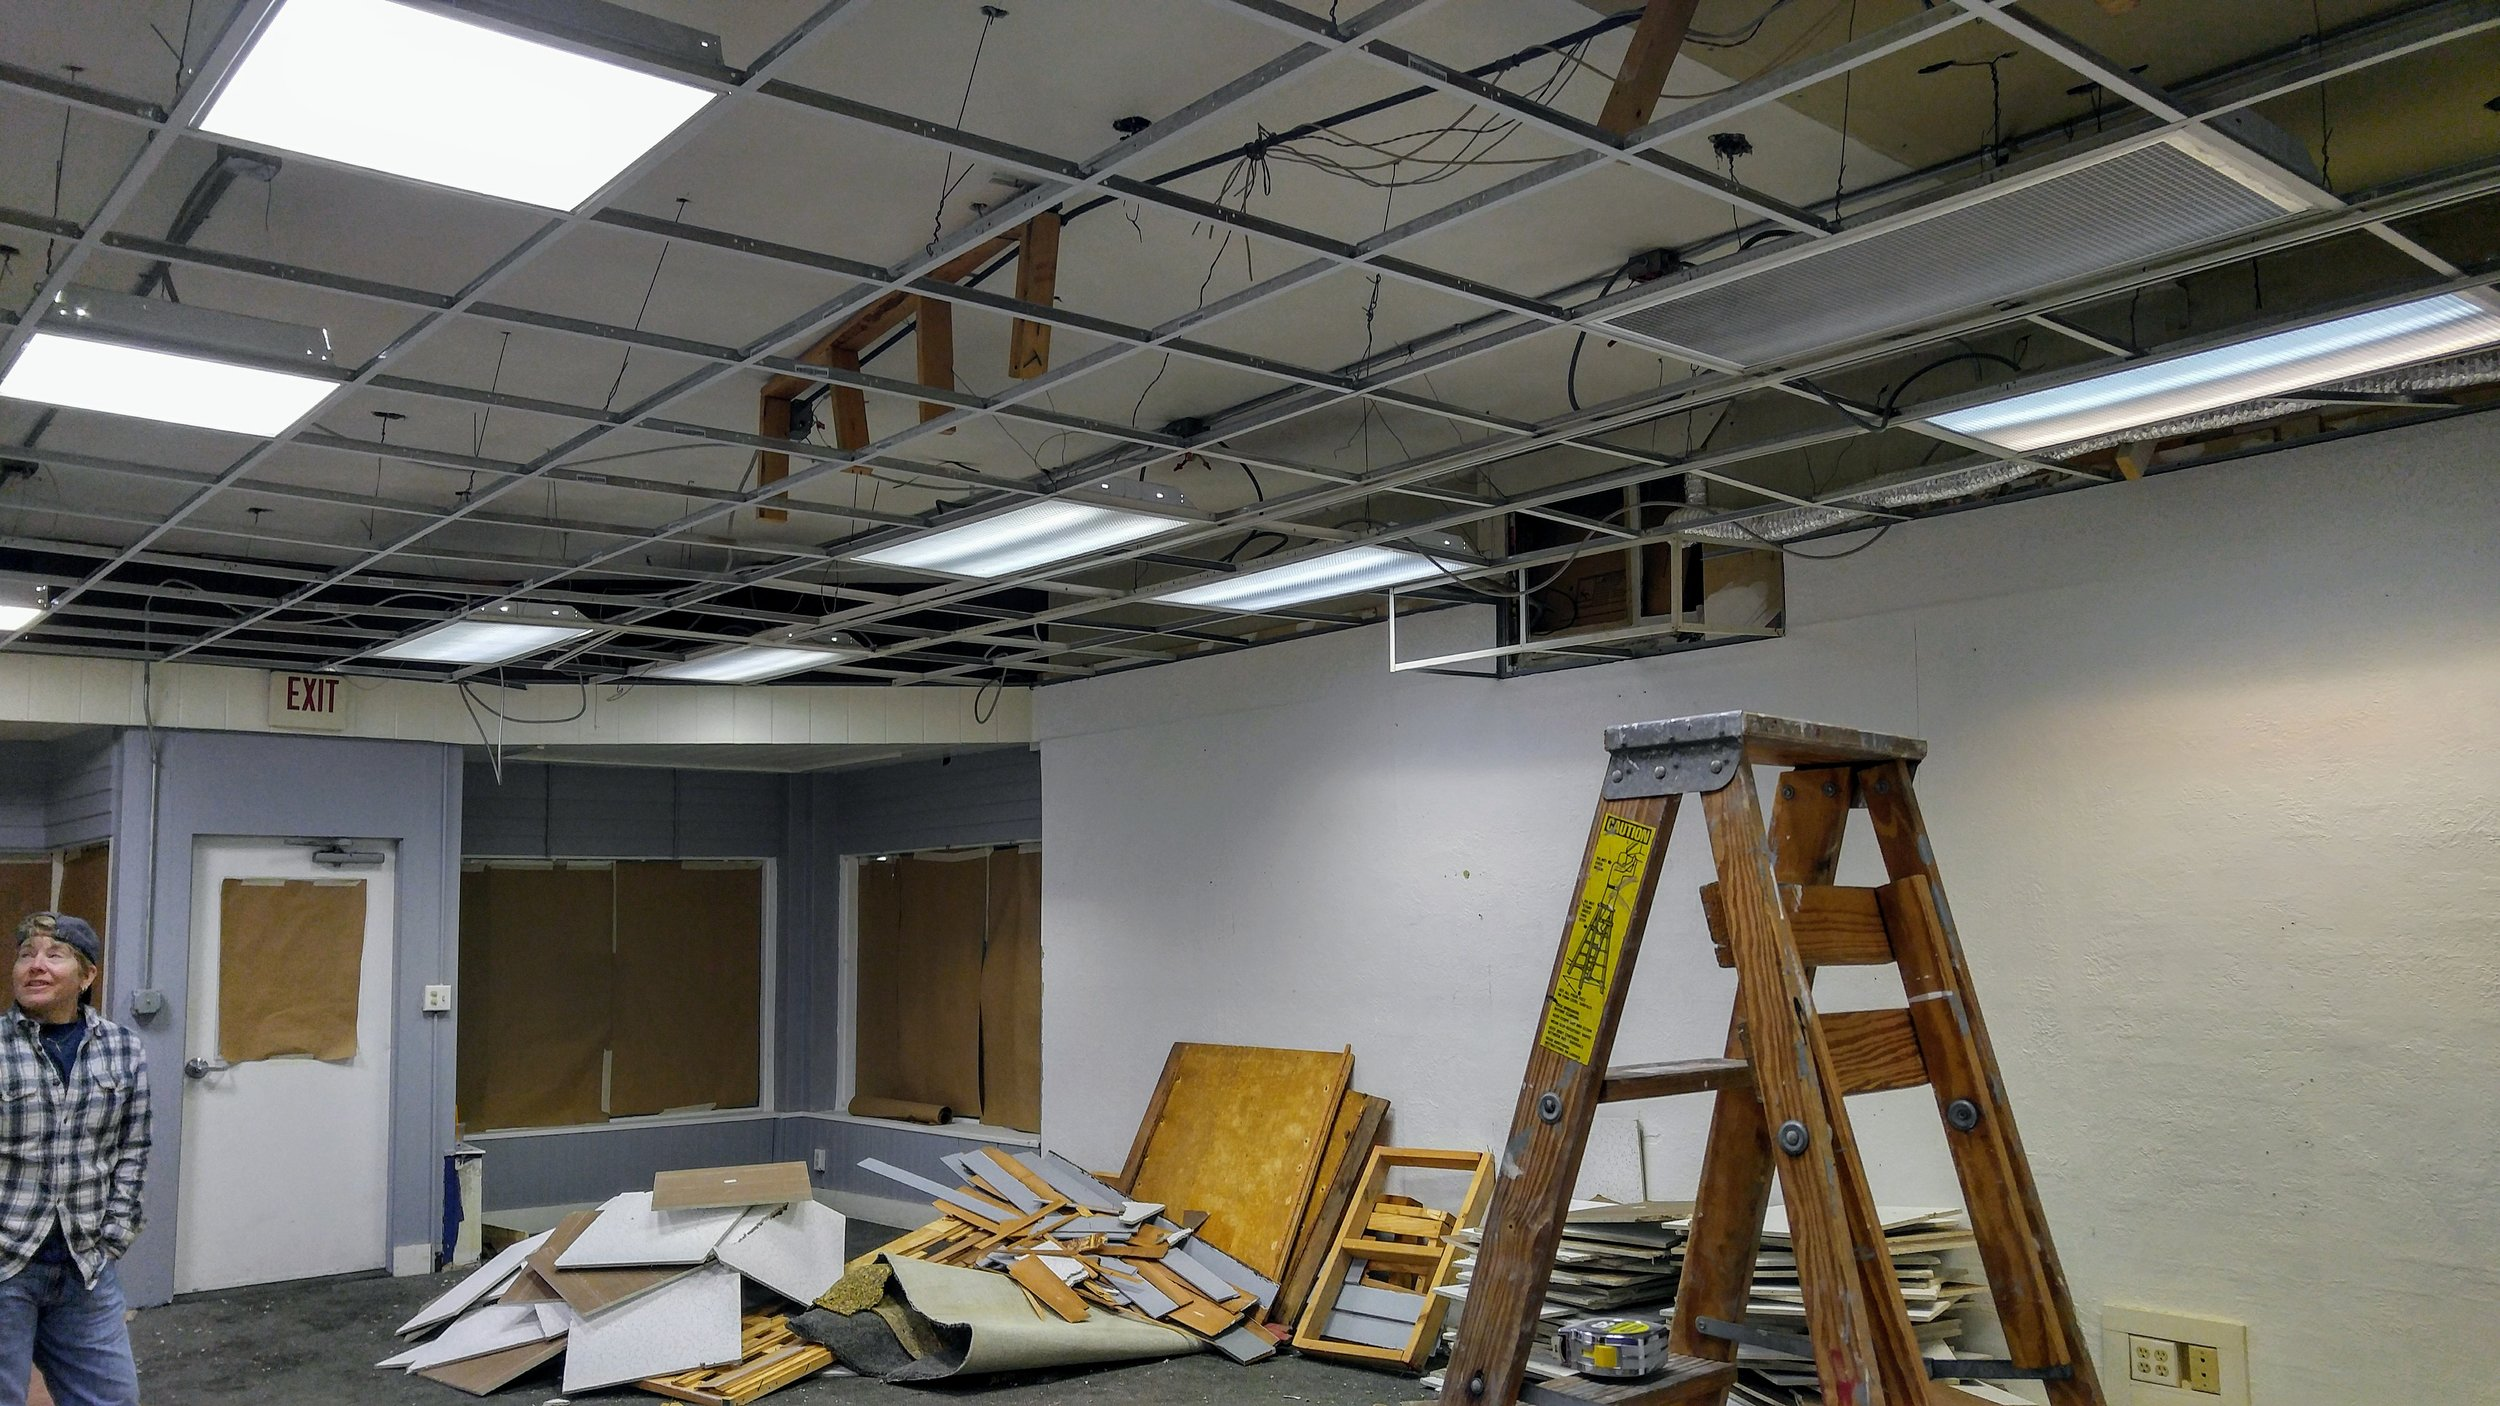 The removal of ceiling tiles opened the space up to reveal another two feet in overall height.